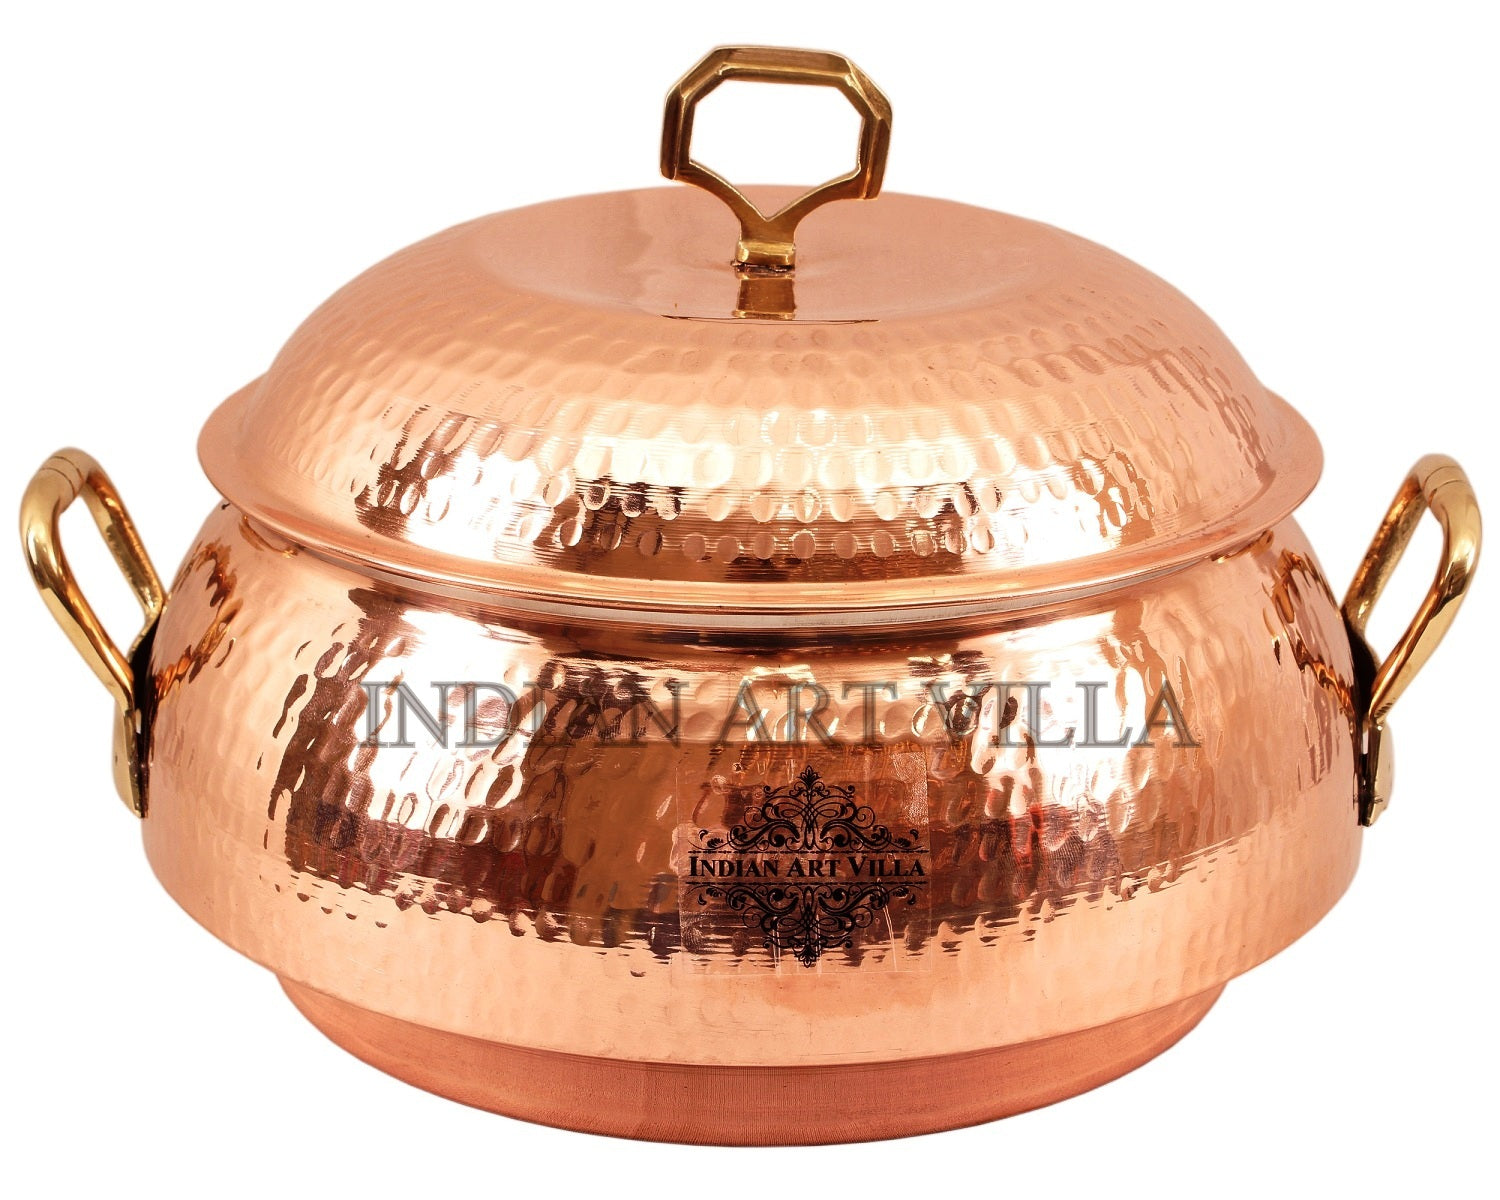 Steel Copper Hammered Design Big Casserole with Lid 2300 ML